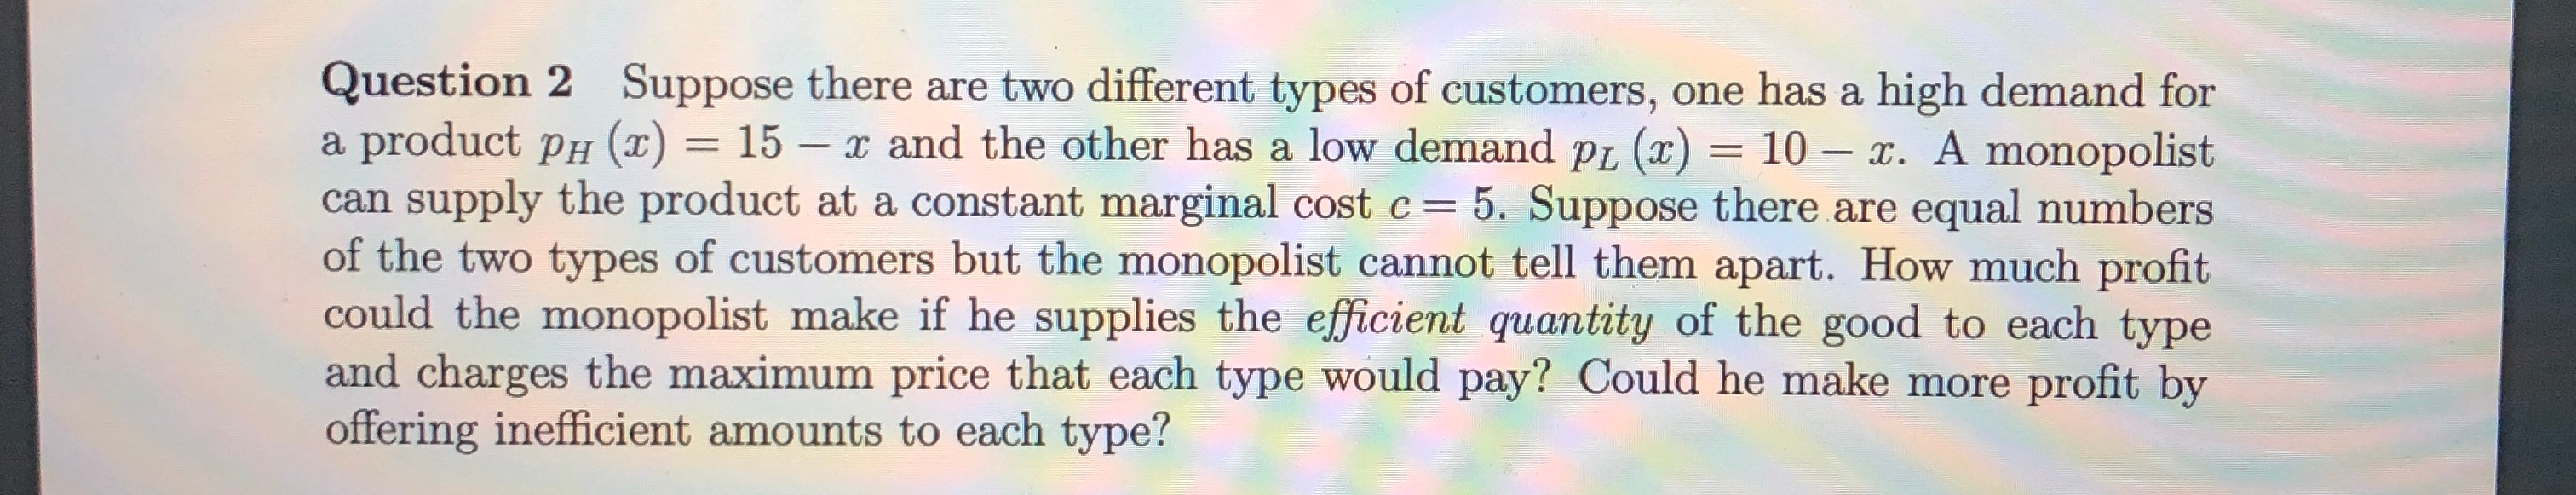 Question 2 Suppose there are two different types of customers, one has a high demand for a product ph (2) = 15 – x and the ot